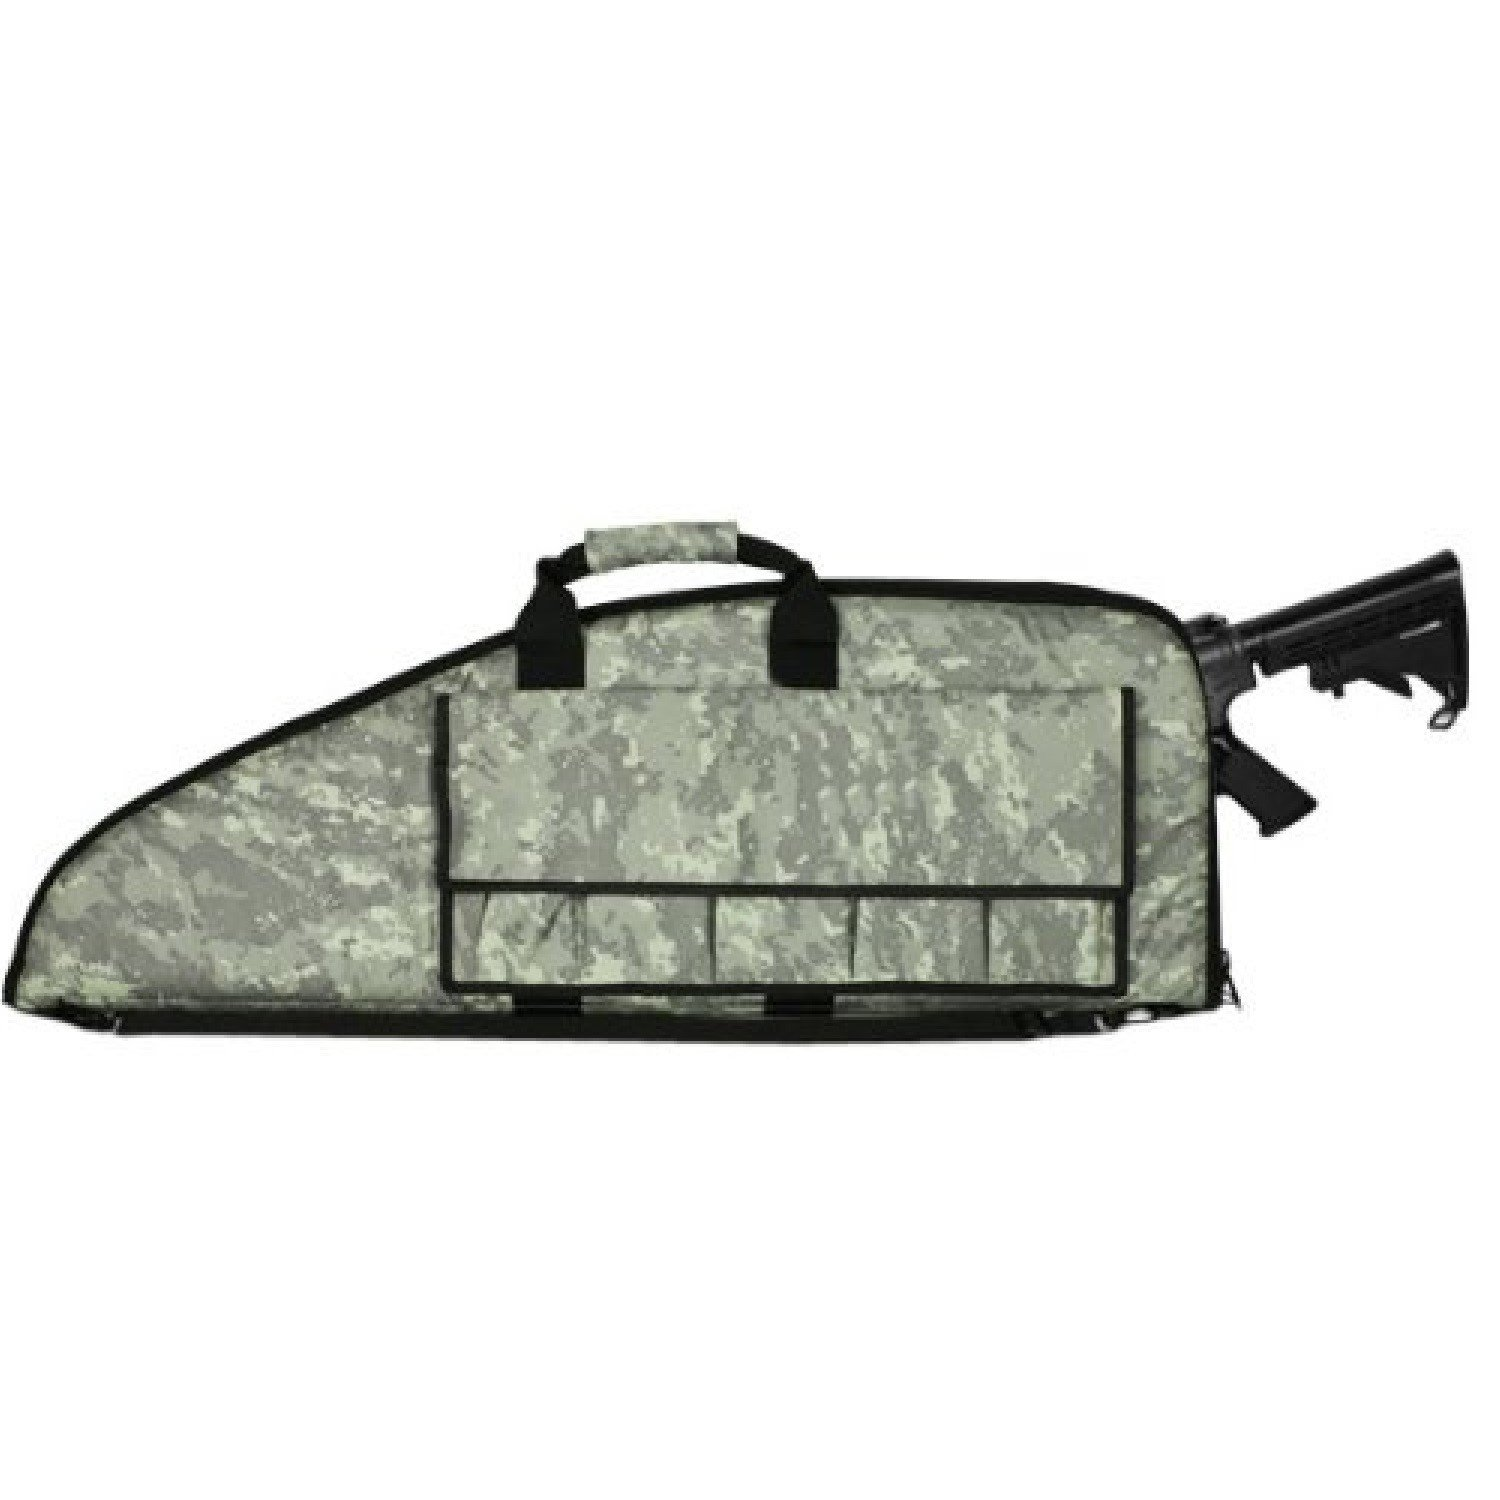 VISM by NcStar Gun Case (CVD2907-40), Digital Camouflage, 40 x 13-Inch by NcSTAR